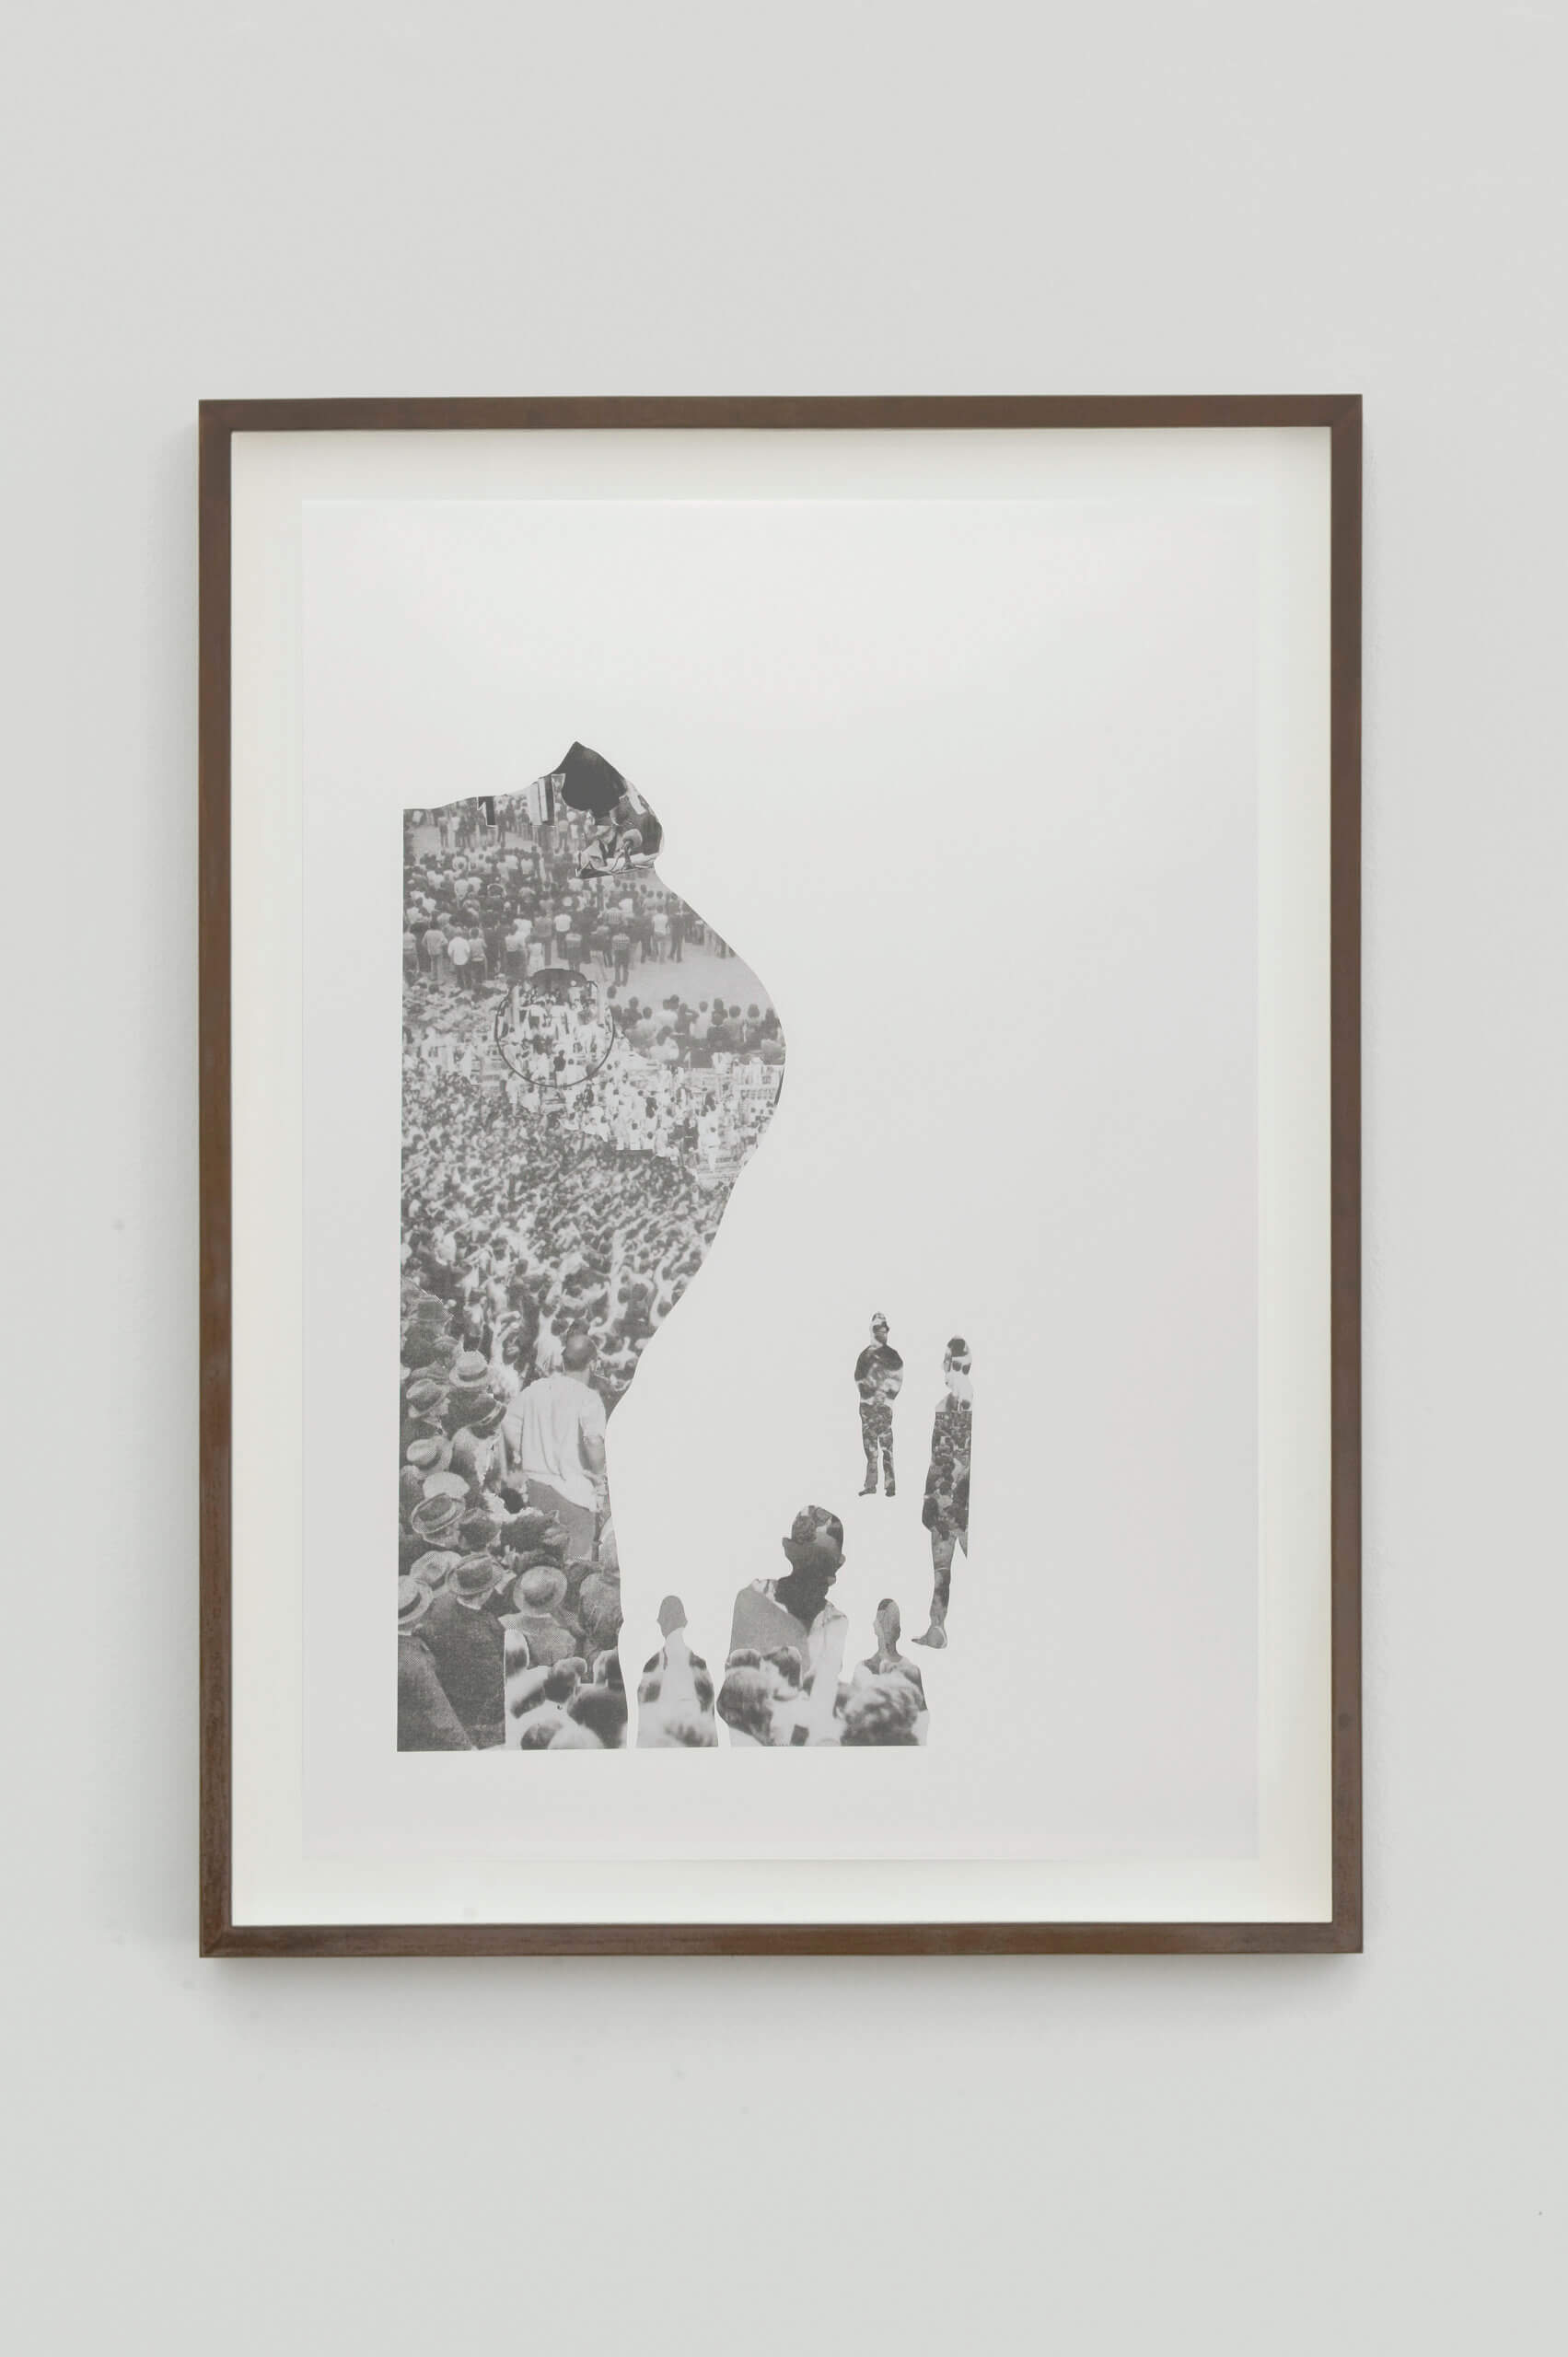 ASIER MENDIZABAL. The Staff That Matters (Gandhi), 2009 | E-ARCO EXHIBITIONS. PRESENTATION #2: Figures and Prefigurations | ProjecteSD